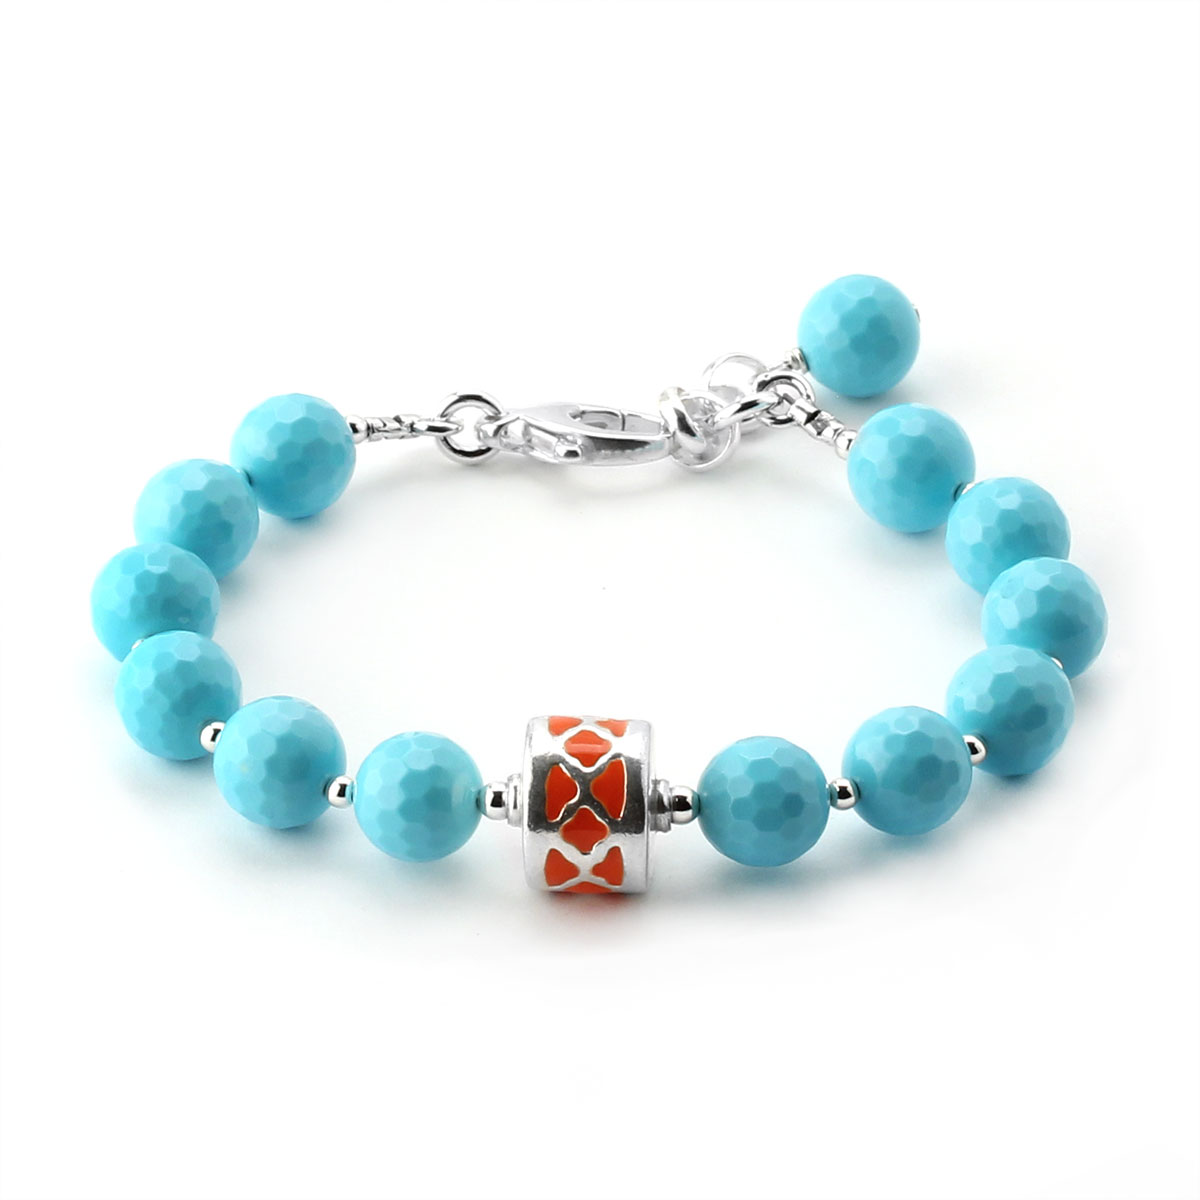 348630-Lollies Turquoise Glass Bracelet